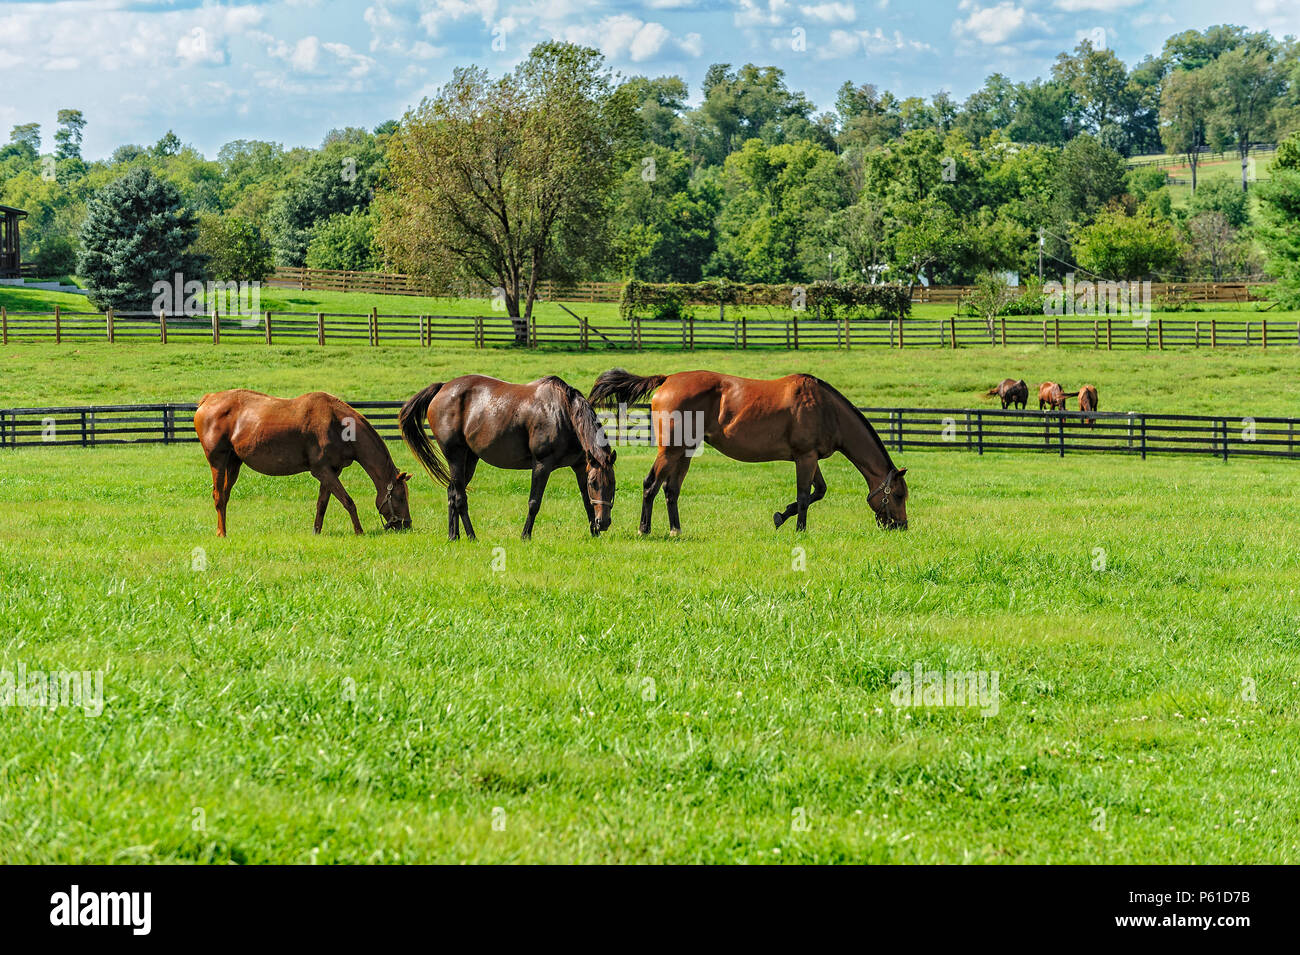 Thoroughbred Horses on a farm in Kentucky Stock Photo